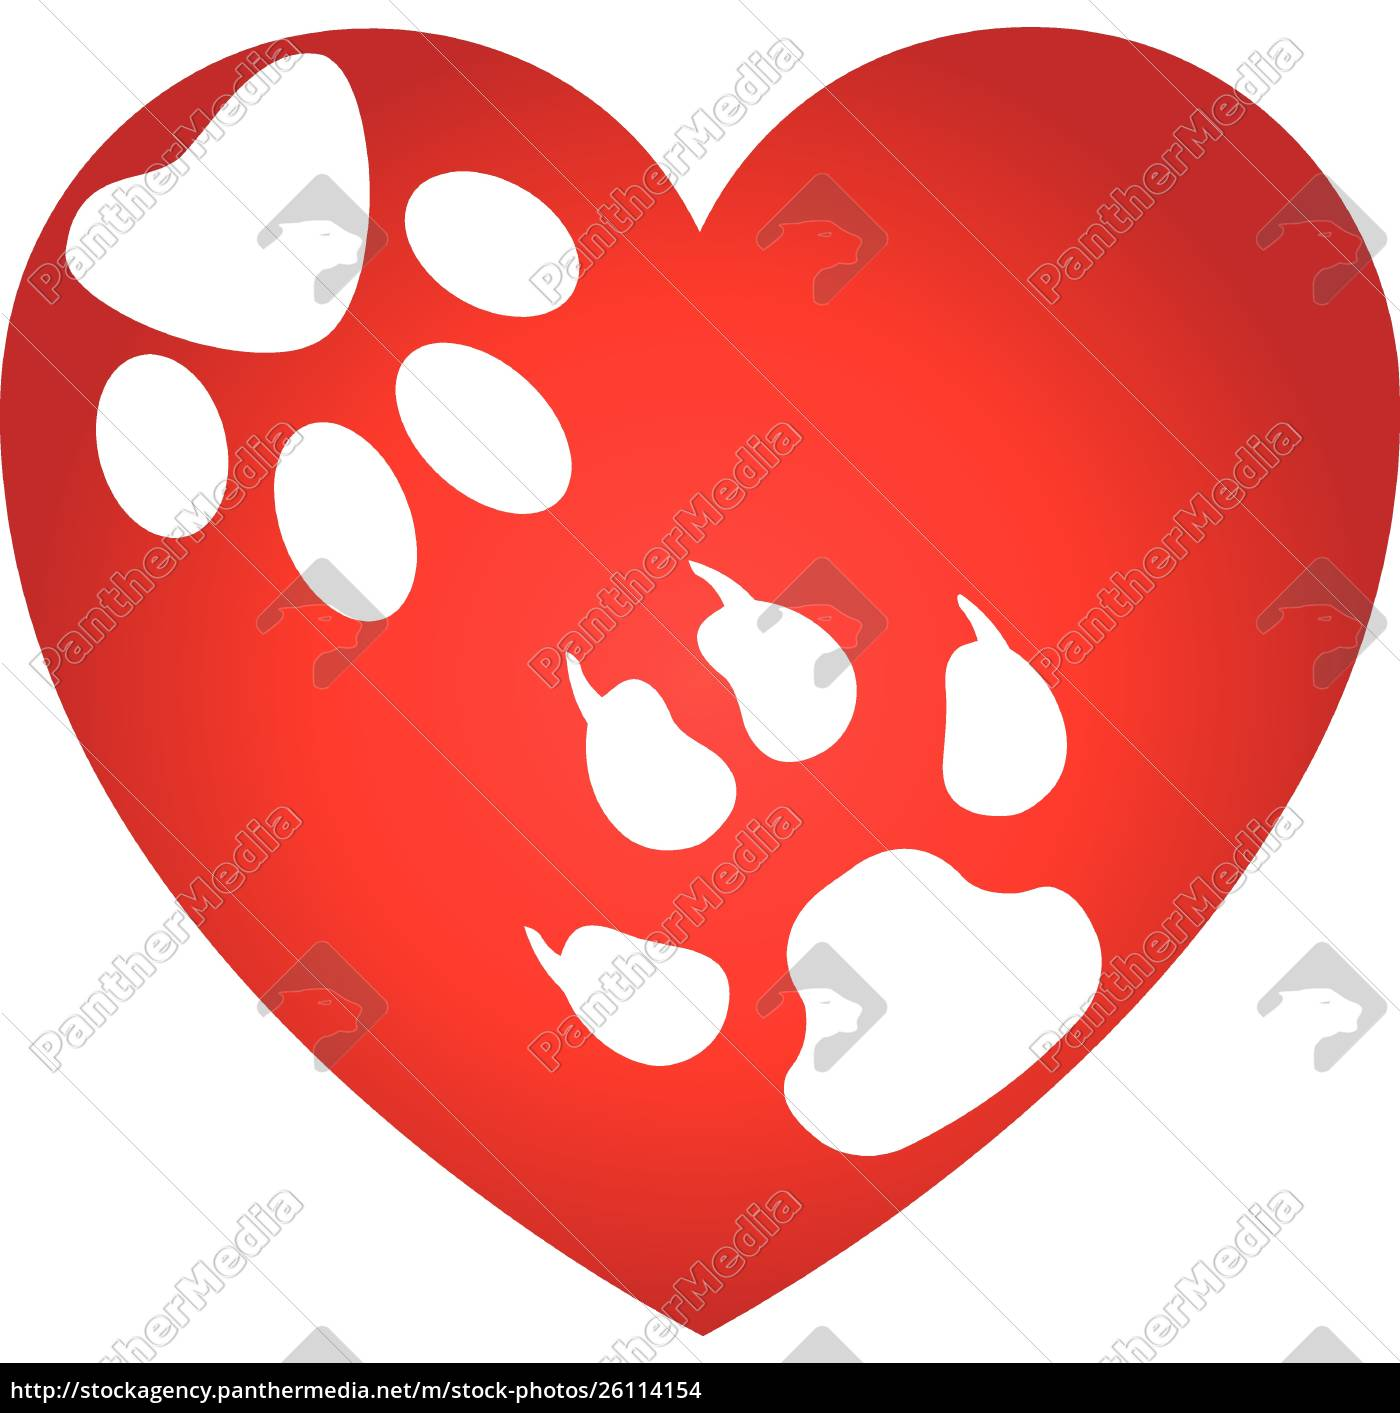 Heart Dog Paw Cat Paw Dog Cat Logo Royalty Free Image 26114154 Panthermedia Stock Agency